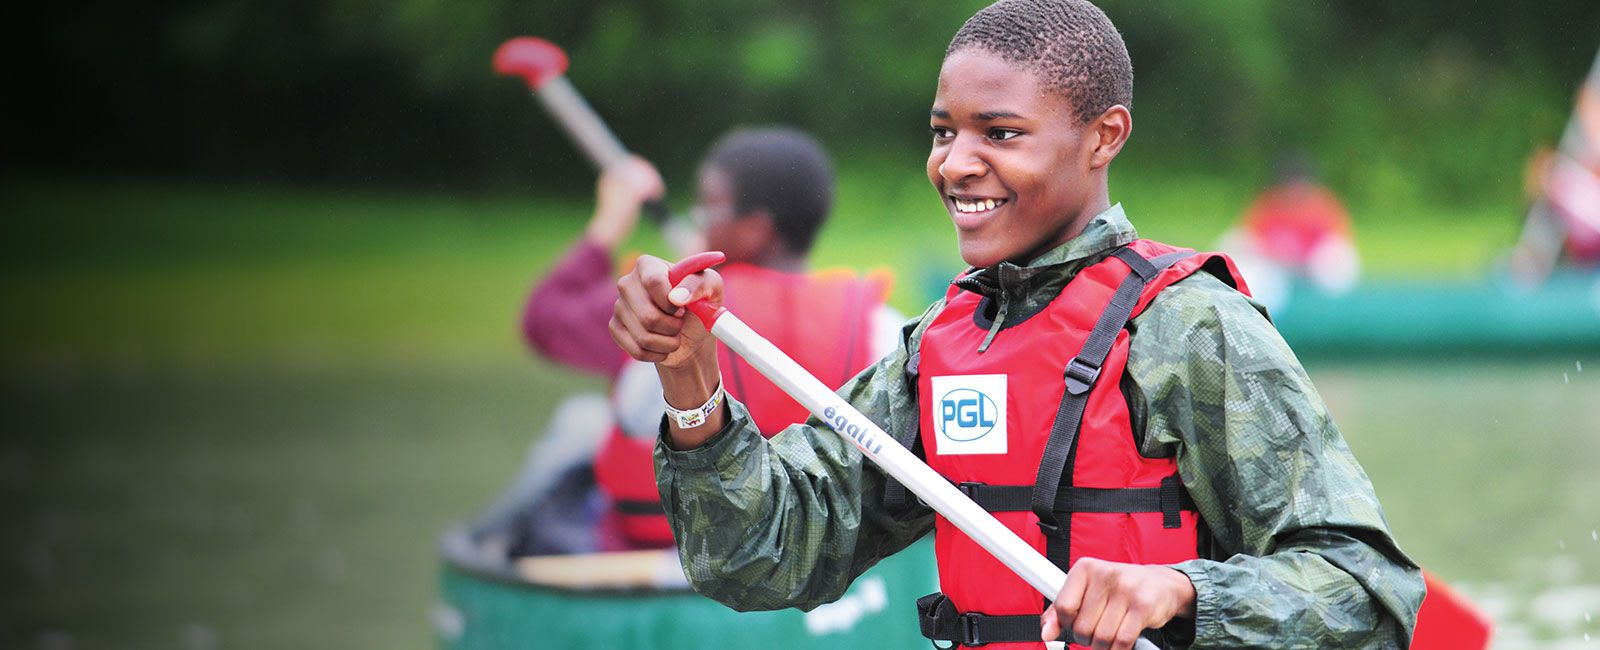 Young boy paddling a canoe across a lake at PGL